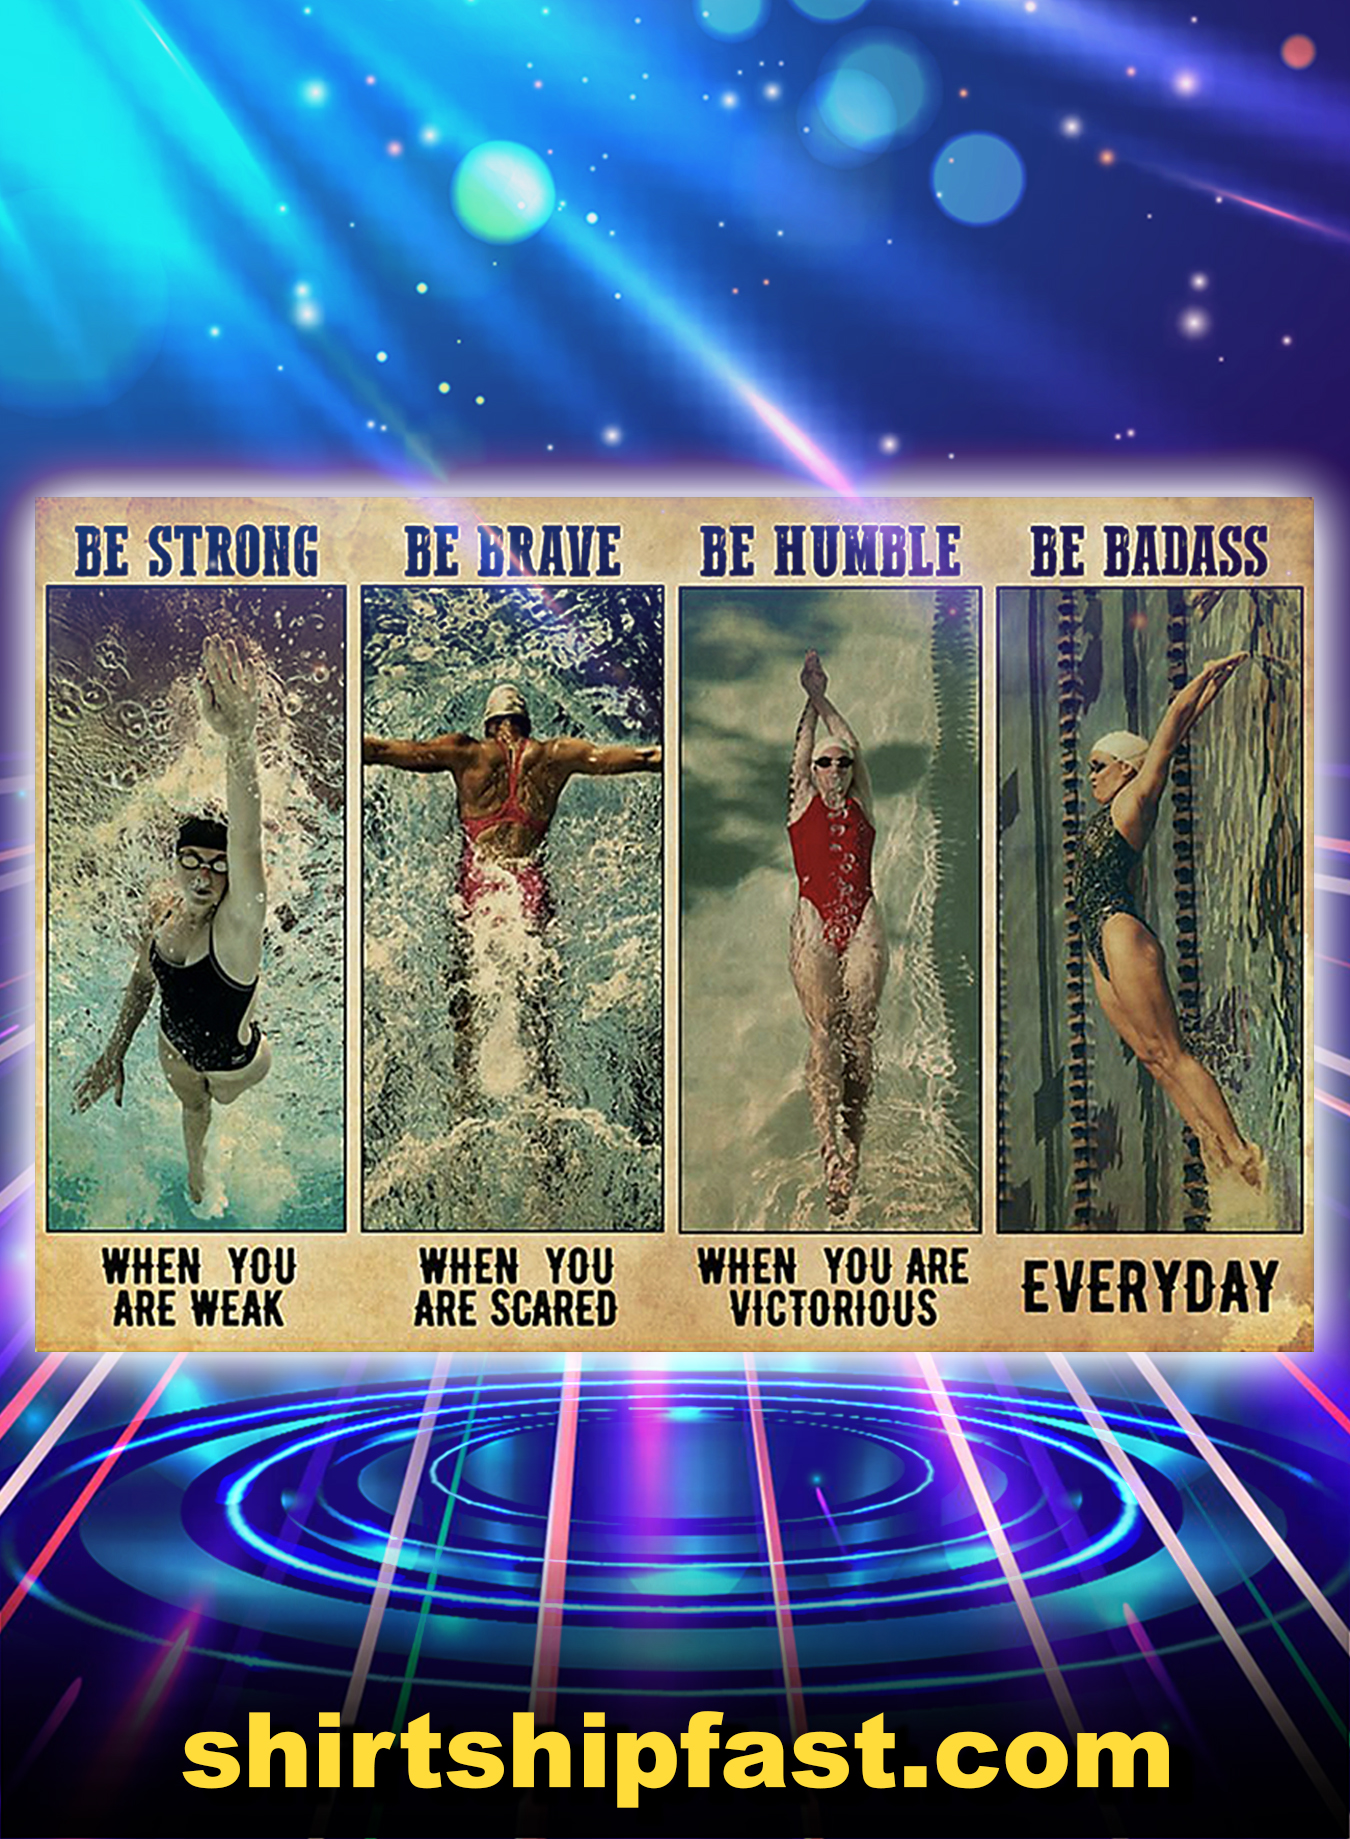 Be strong be brave be humble be badass swimming poster - A3